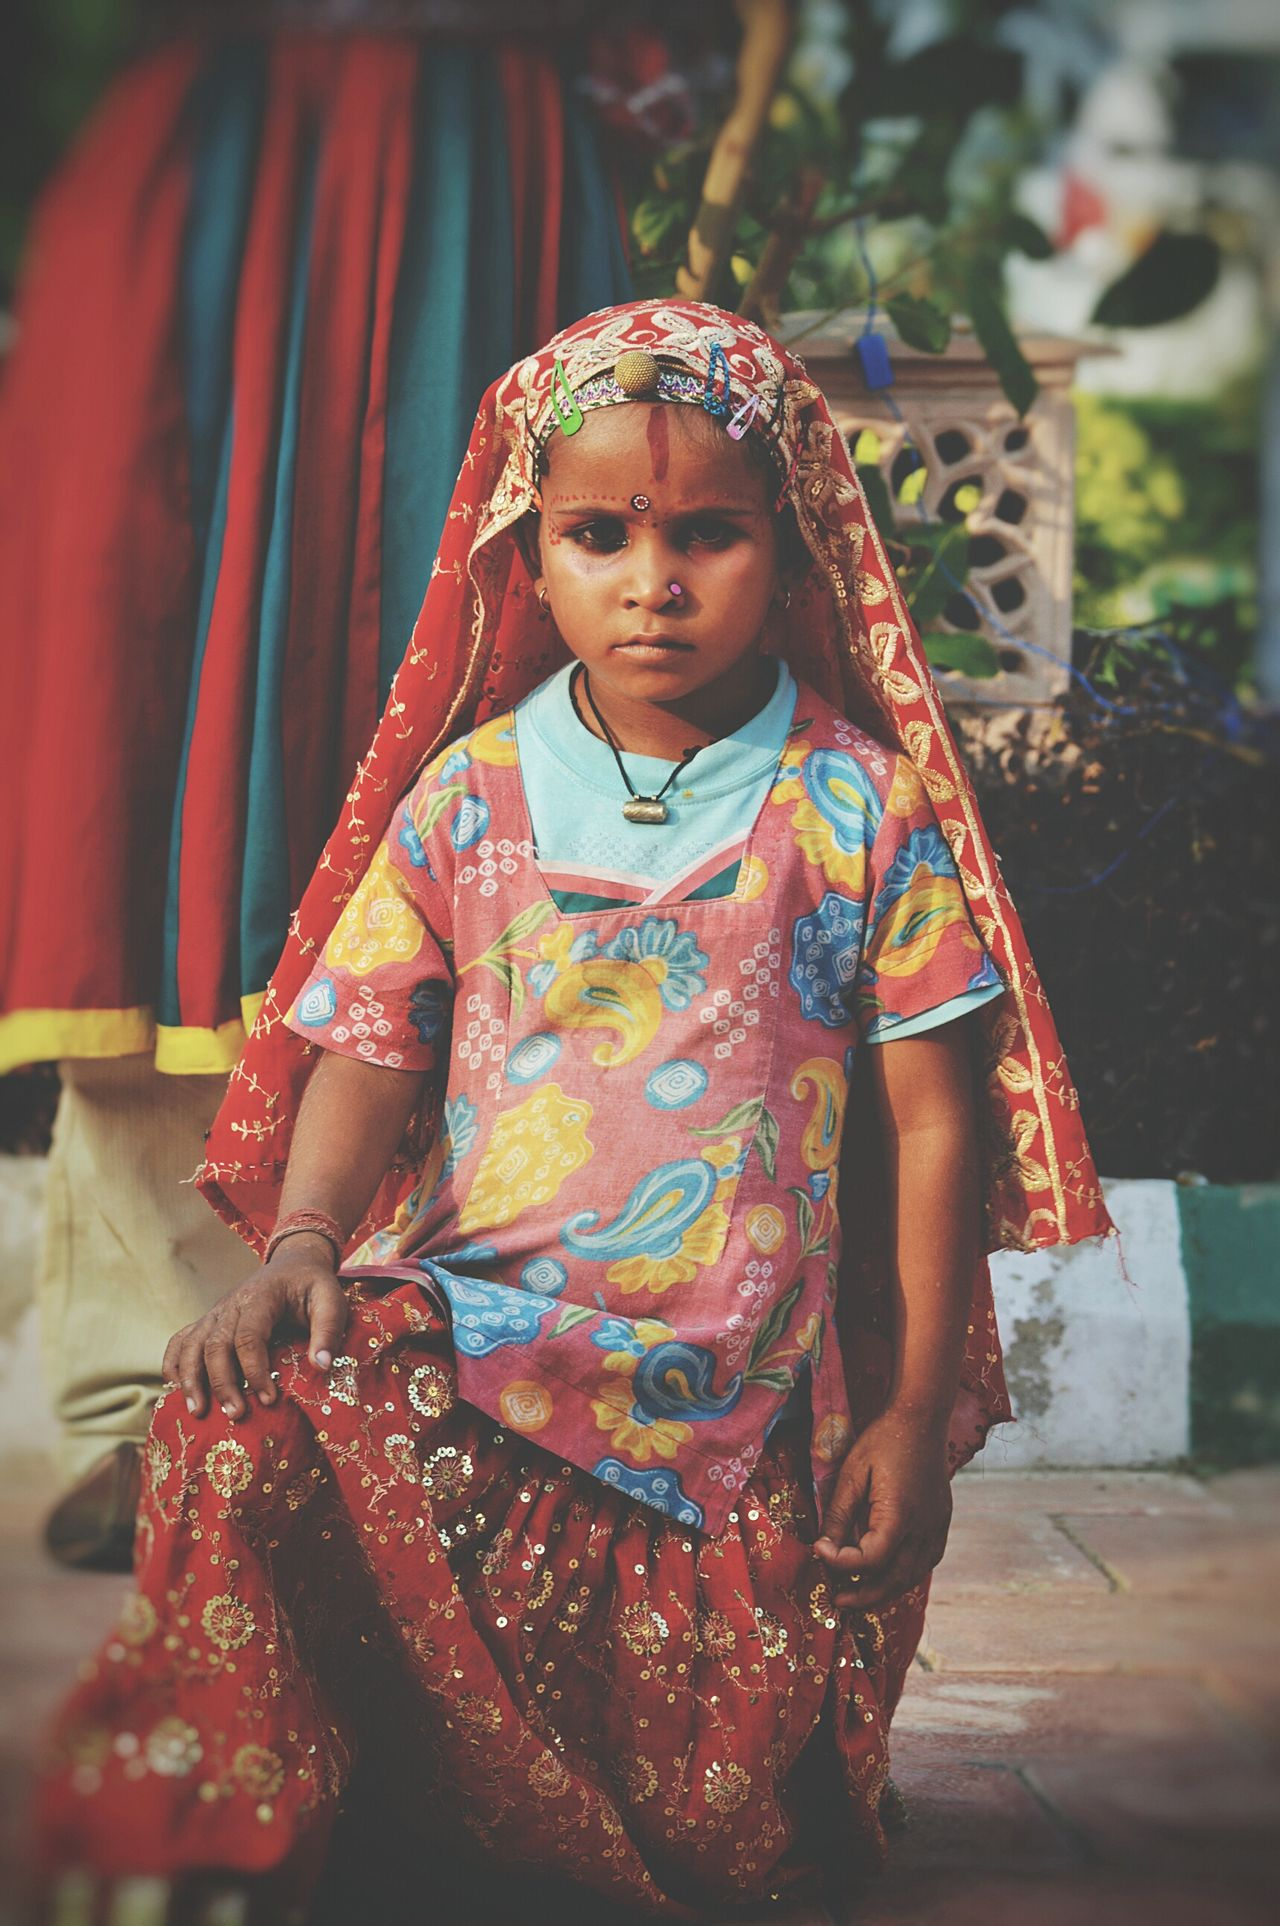 Childhood Elementary Age Lifestyles Front View Innocence Cute Smiling Selective Focus Three Quarter Length Streetphotography India World Culture Portrait Of Innocence Portrait Photography Folk Music Folk Dance